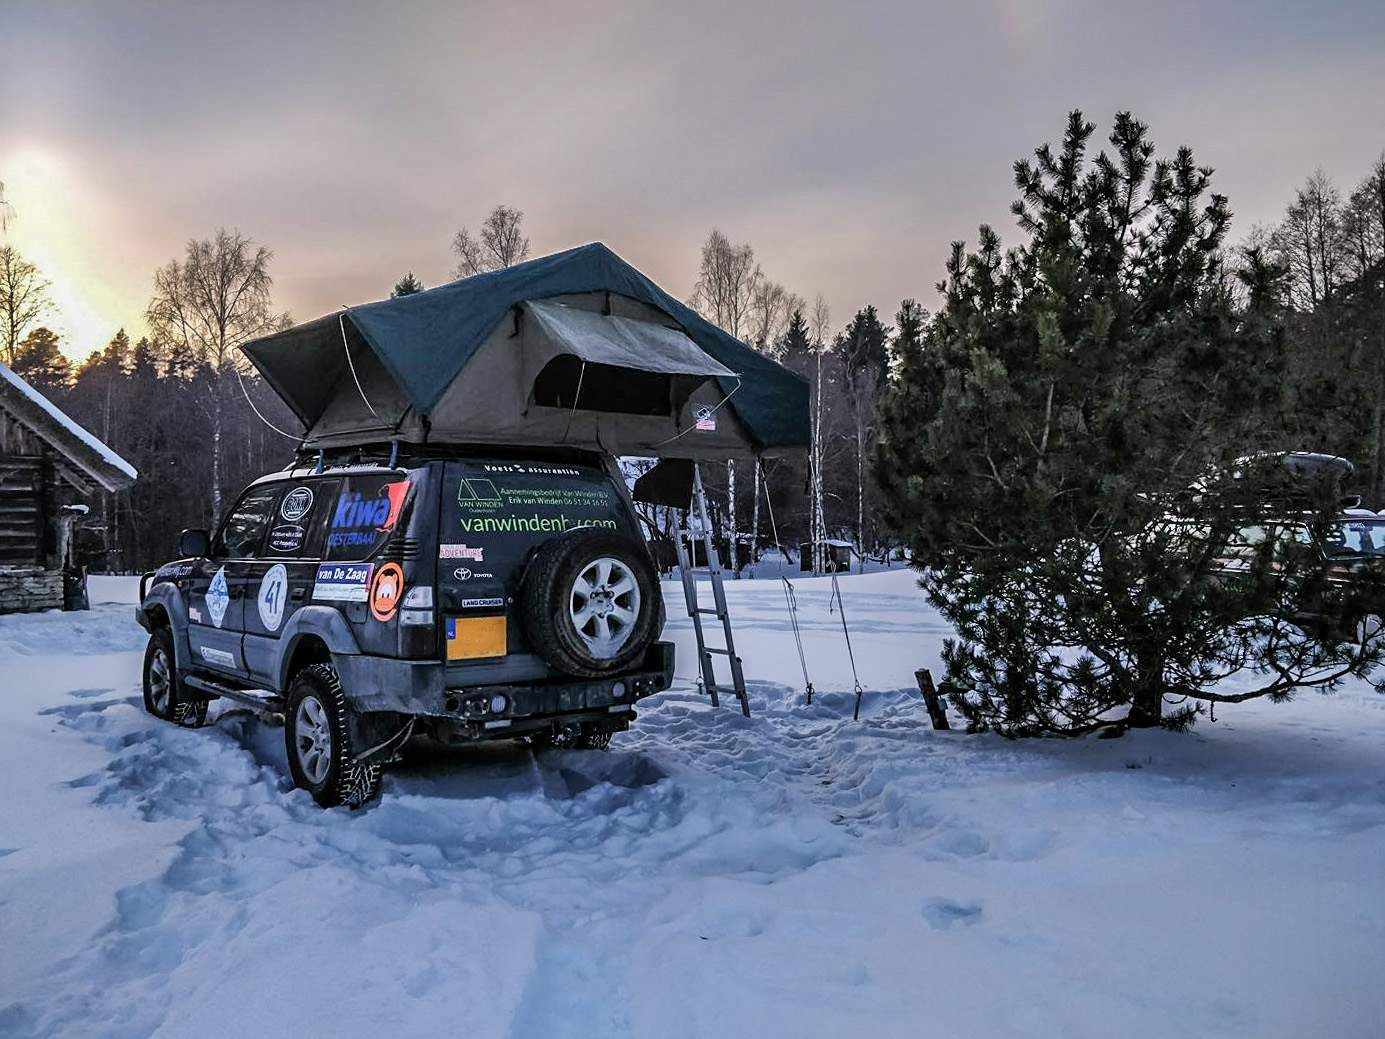 Tembo 4x4 Camping In The Snow Roof Top Tent 4x4 Off Road Adventure